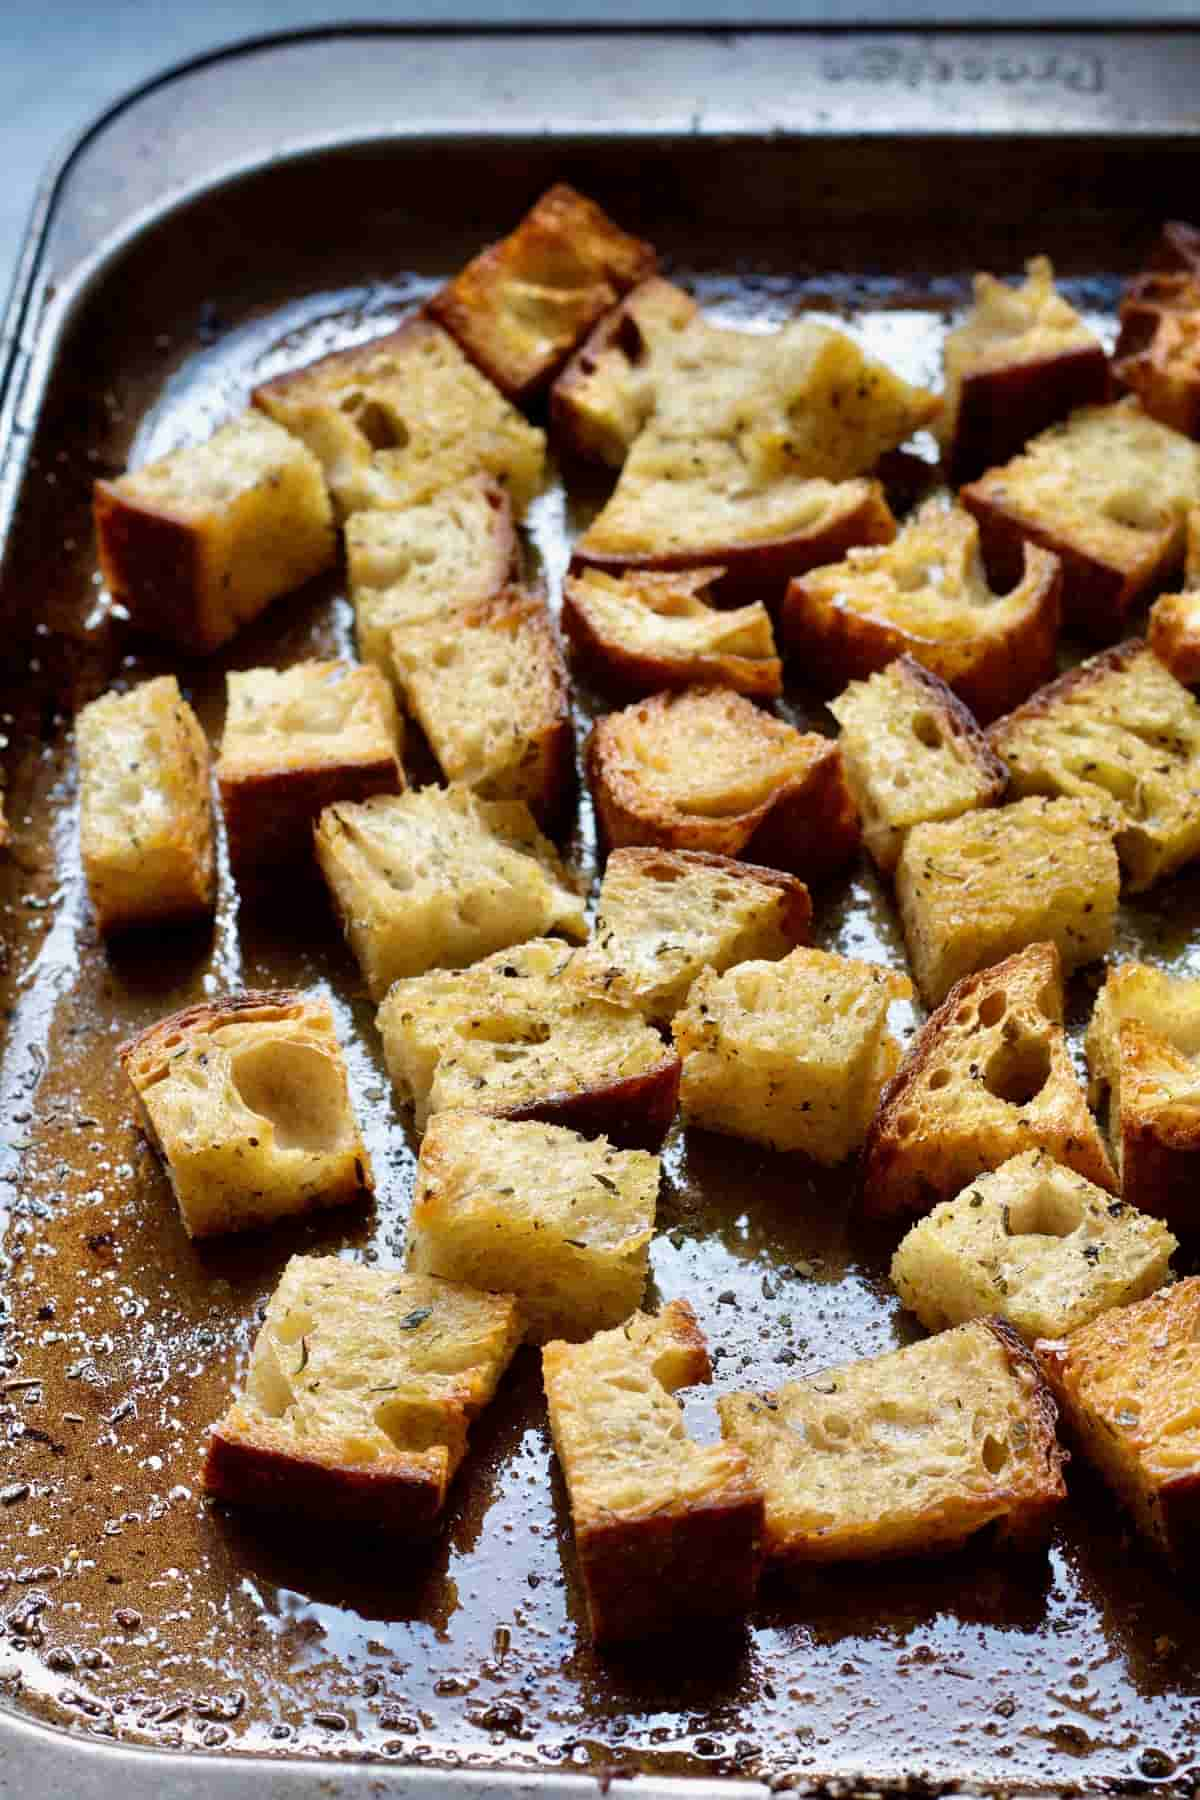 Croutons on a baking tray.